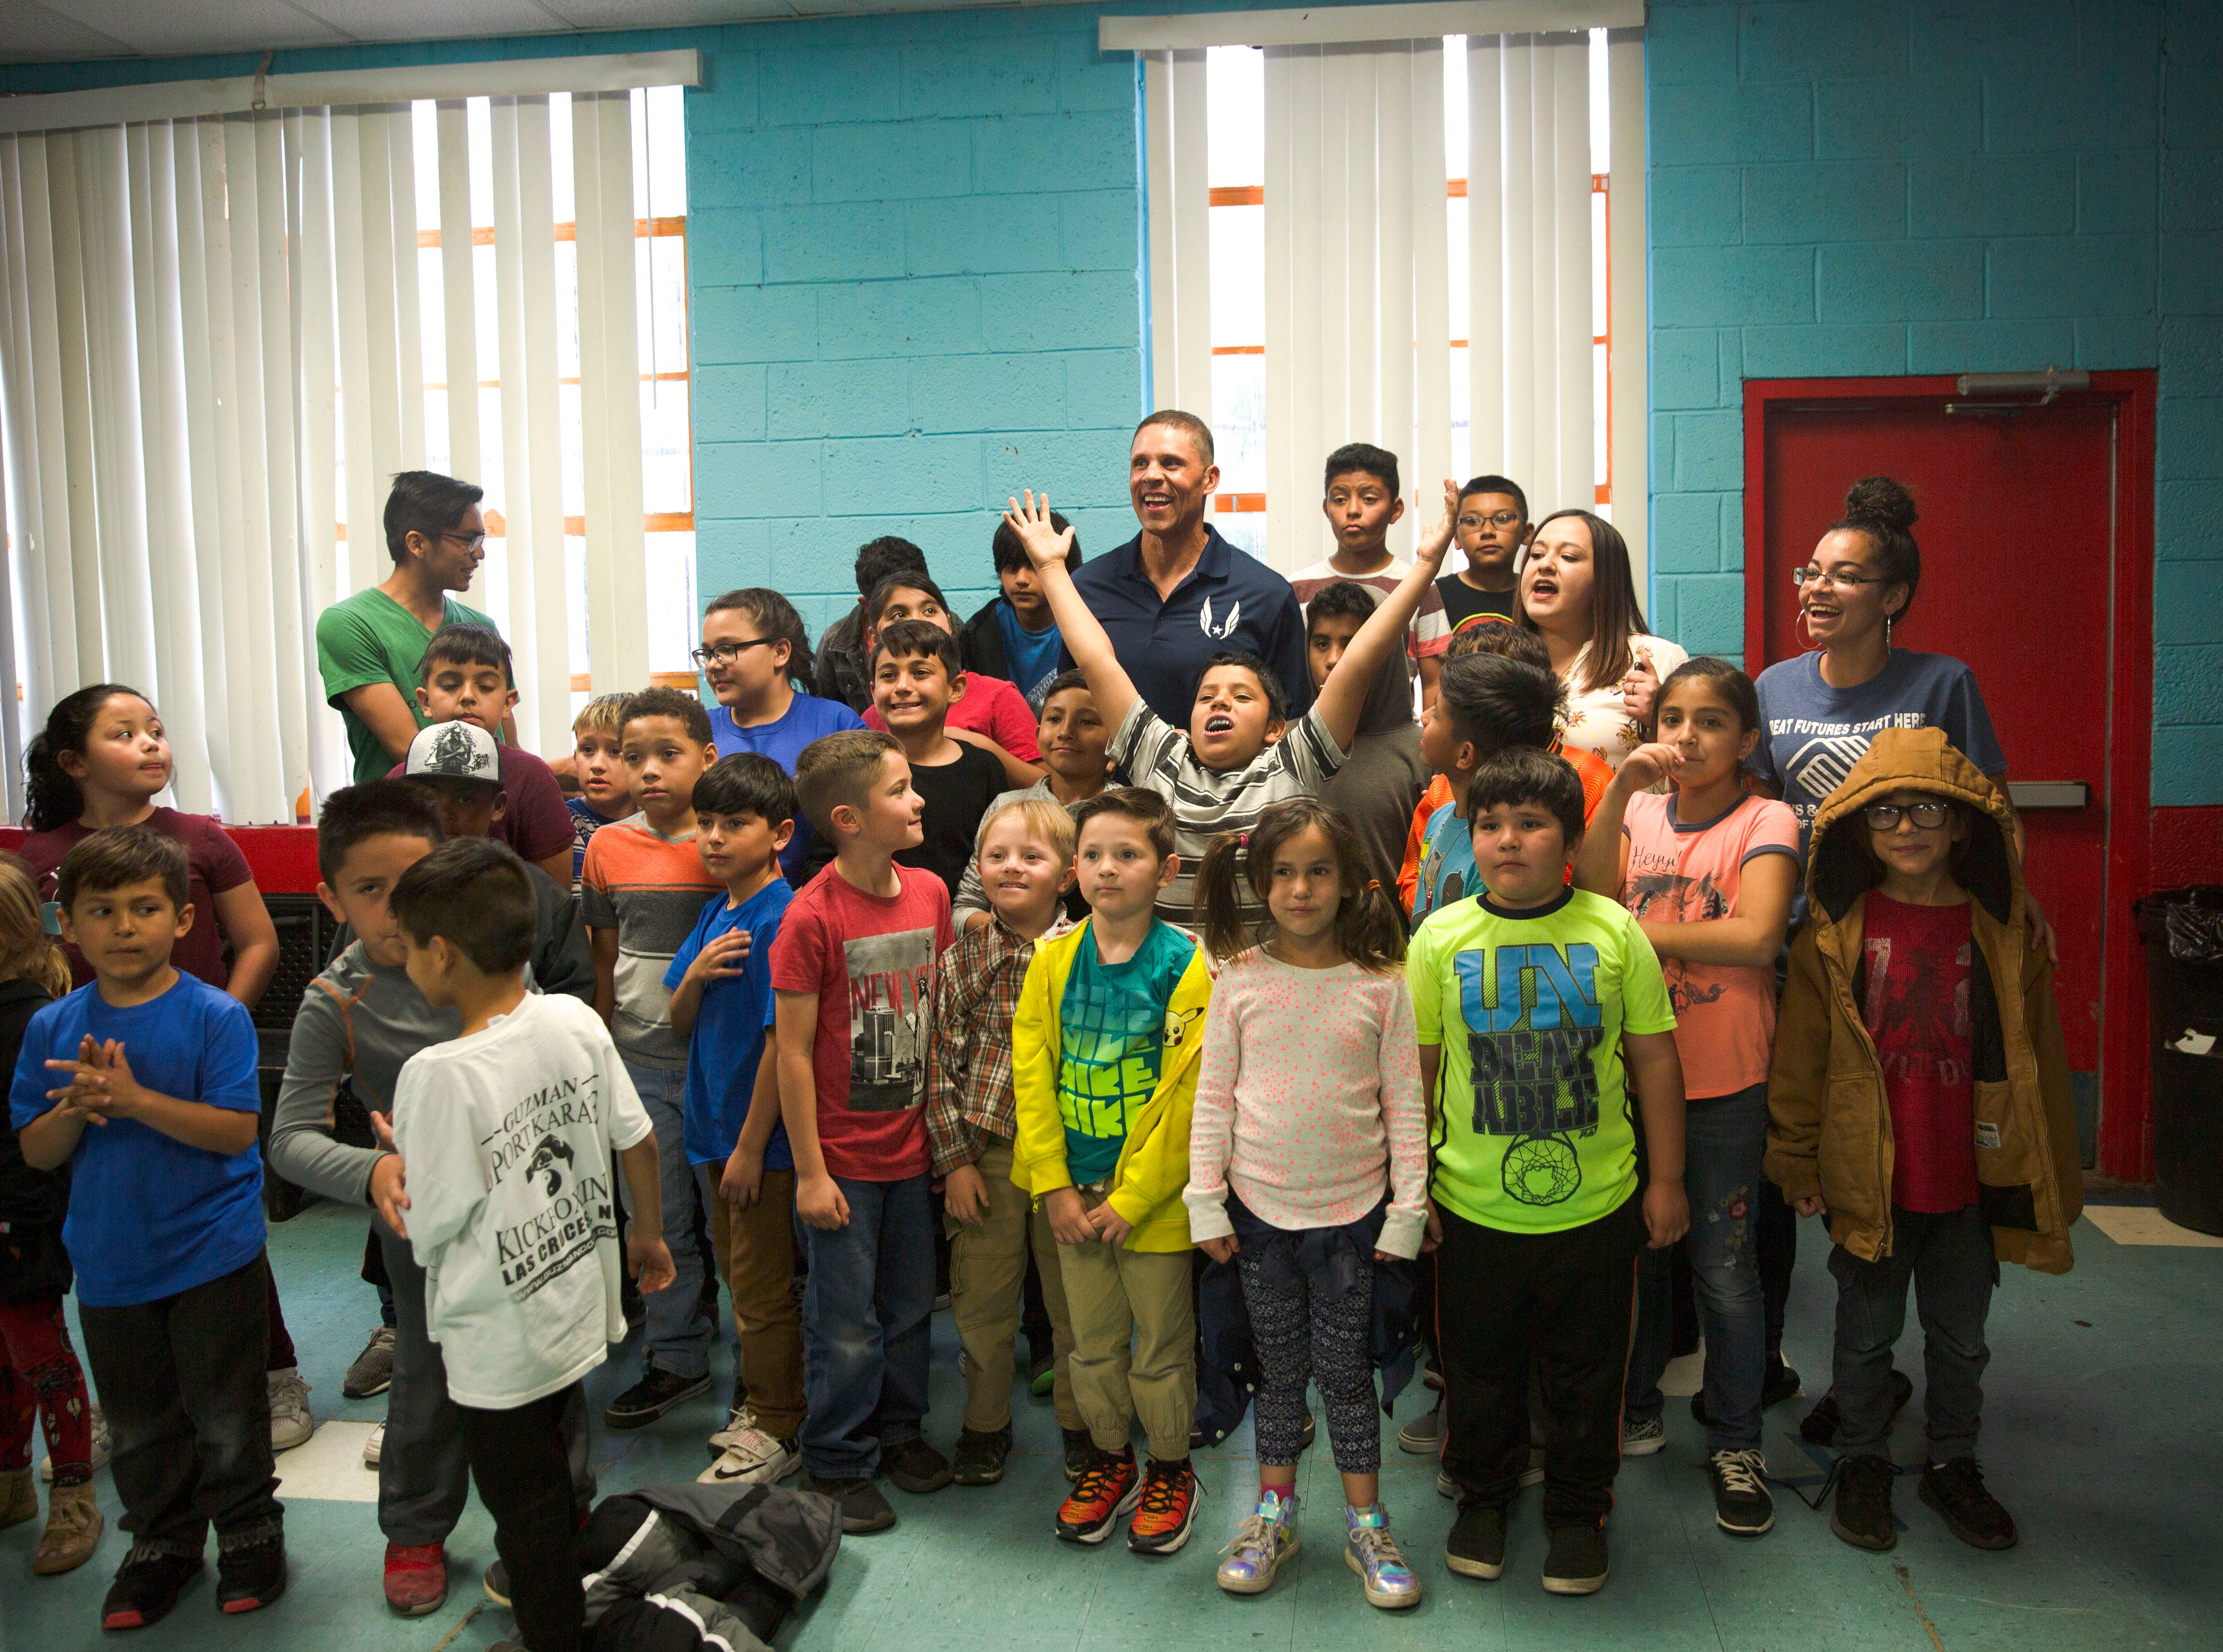 Olympic gold medalist Dan O'Brien poses with children at the Las Cruces Boys and Girl's Club, Wednesday April 17, 2019. O'Brien is the keynote speaker at the Lou and Mary Henson Community Breakfast.